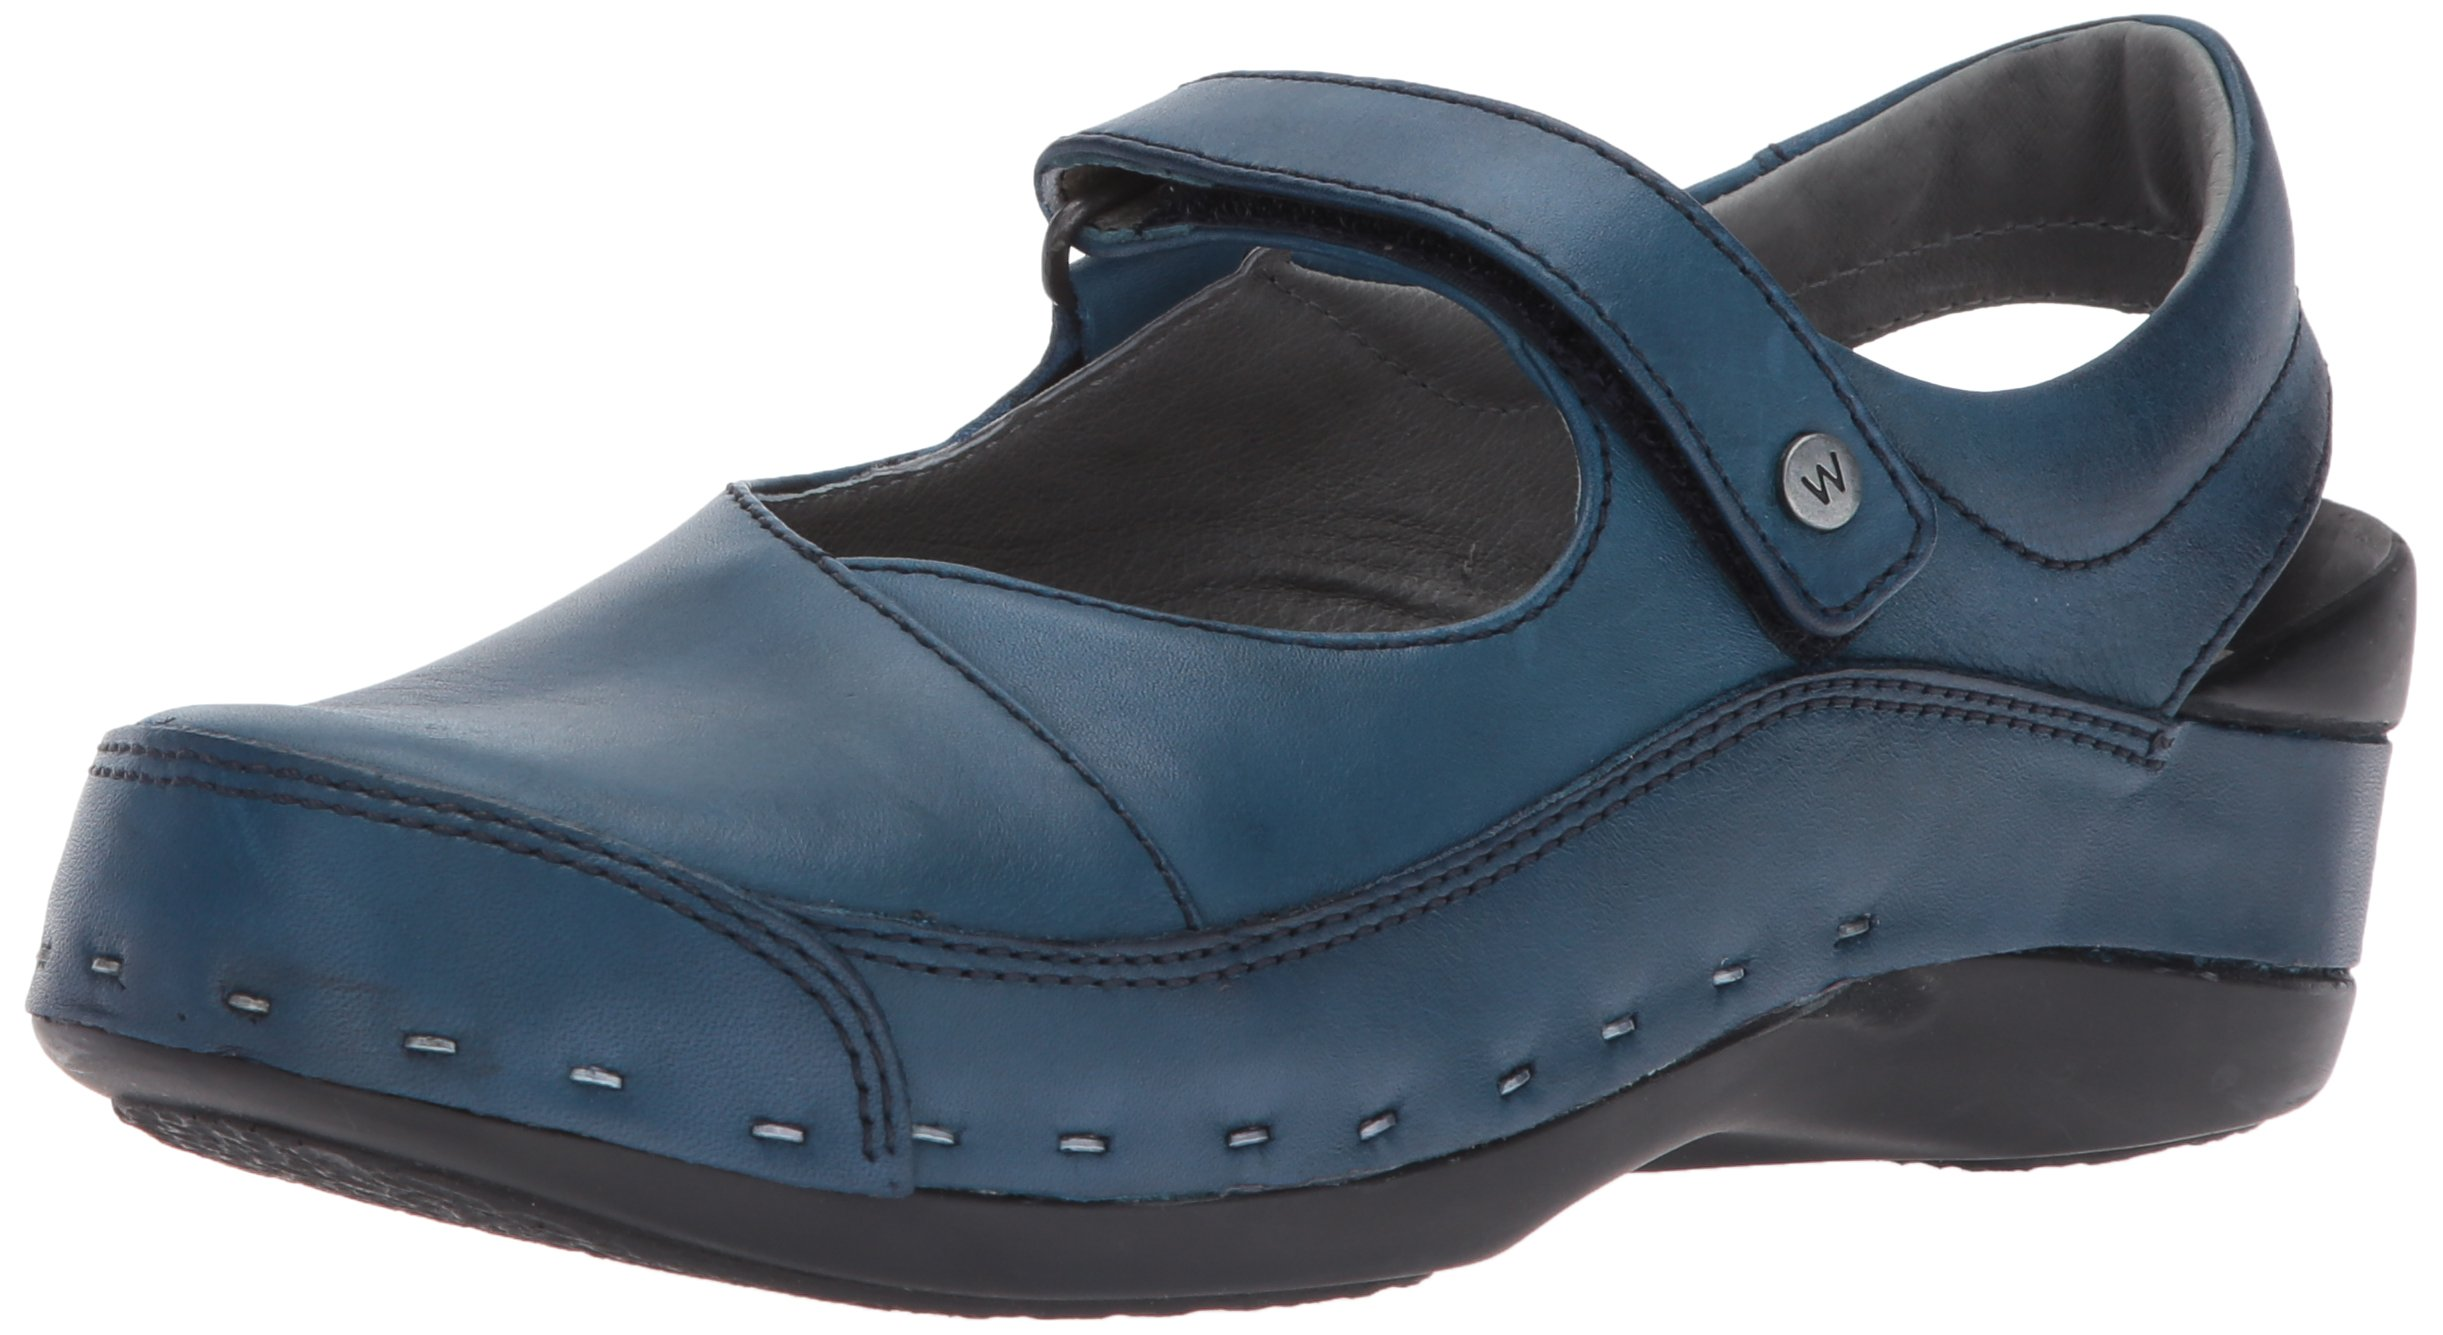 Wolky Women's Strap-Cloggy Blue Vegi Leather 40 European by Wolky